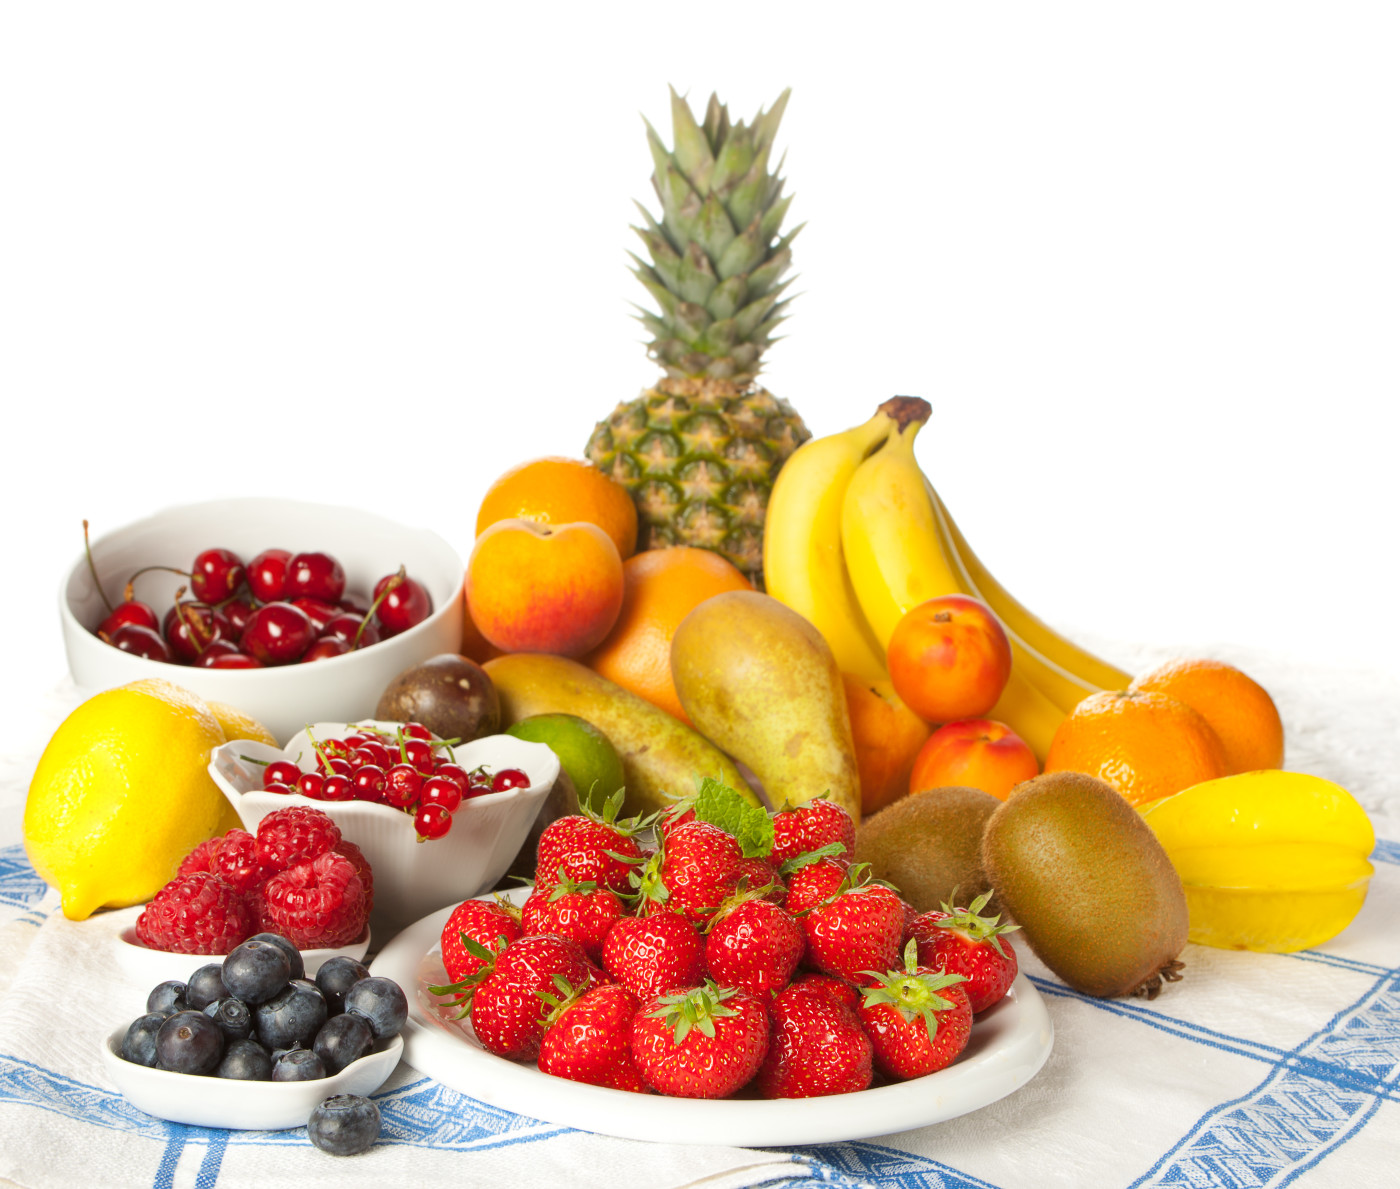 Assorted summer fruits on a vintage tablecloth